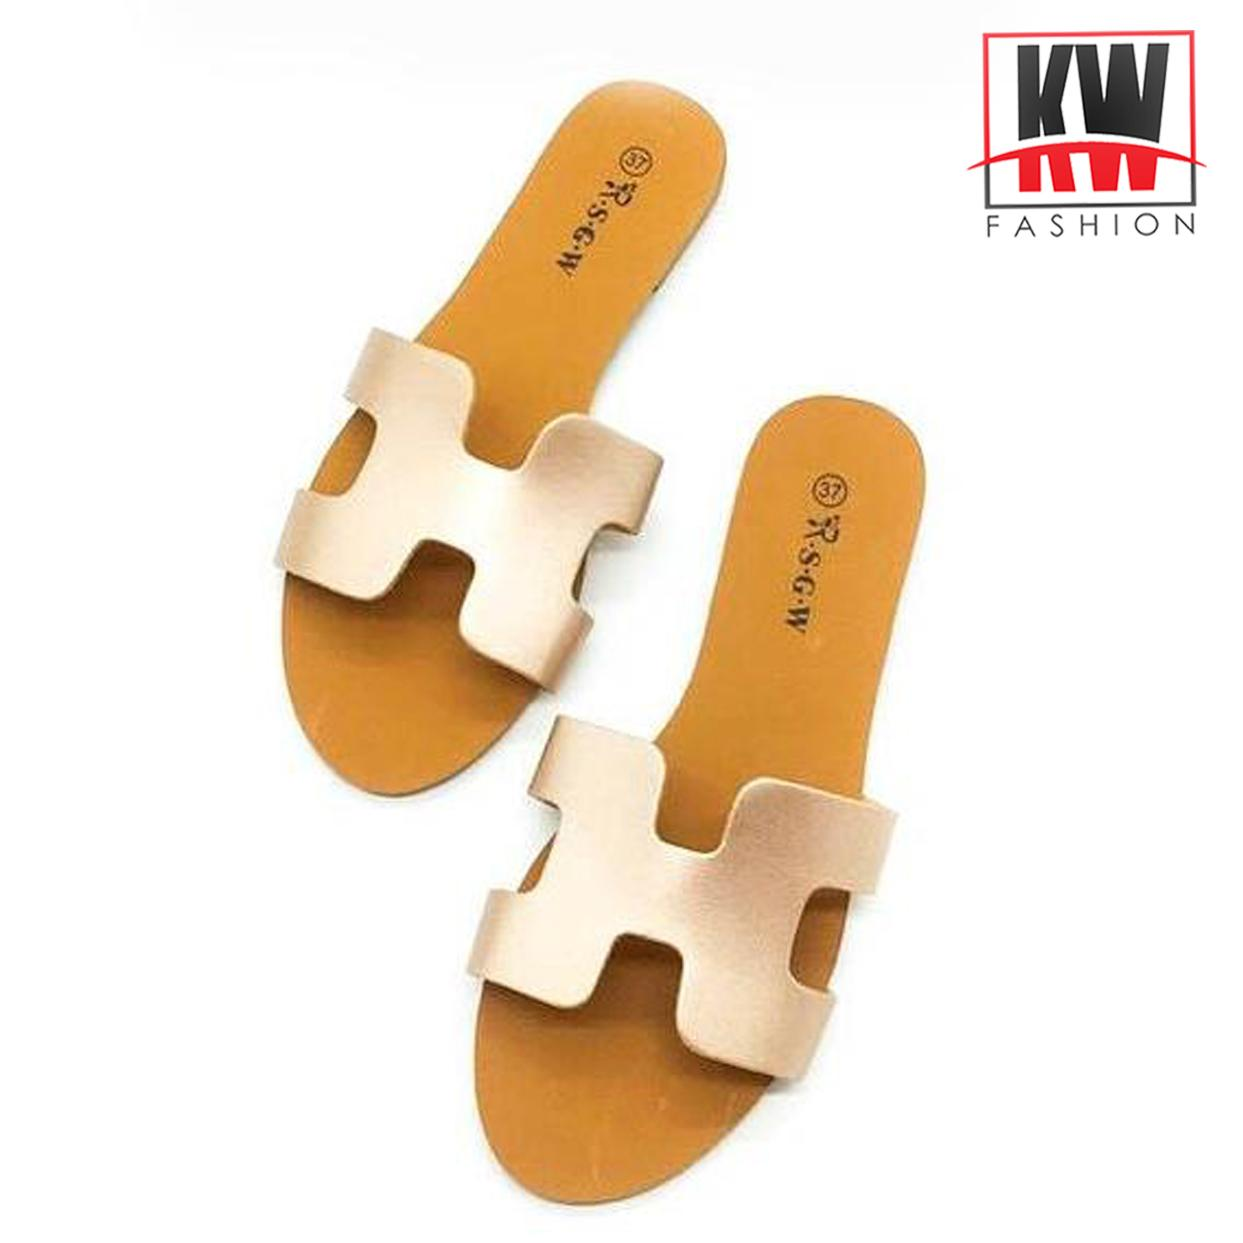 ad374f650223 Womens Sandals for sale - Ladies Sandals online brands